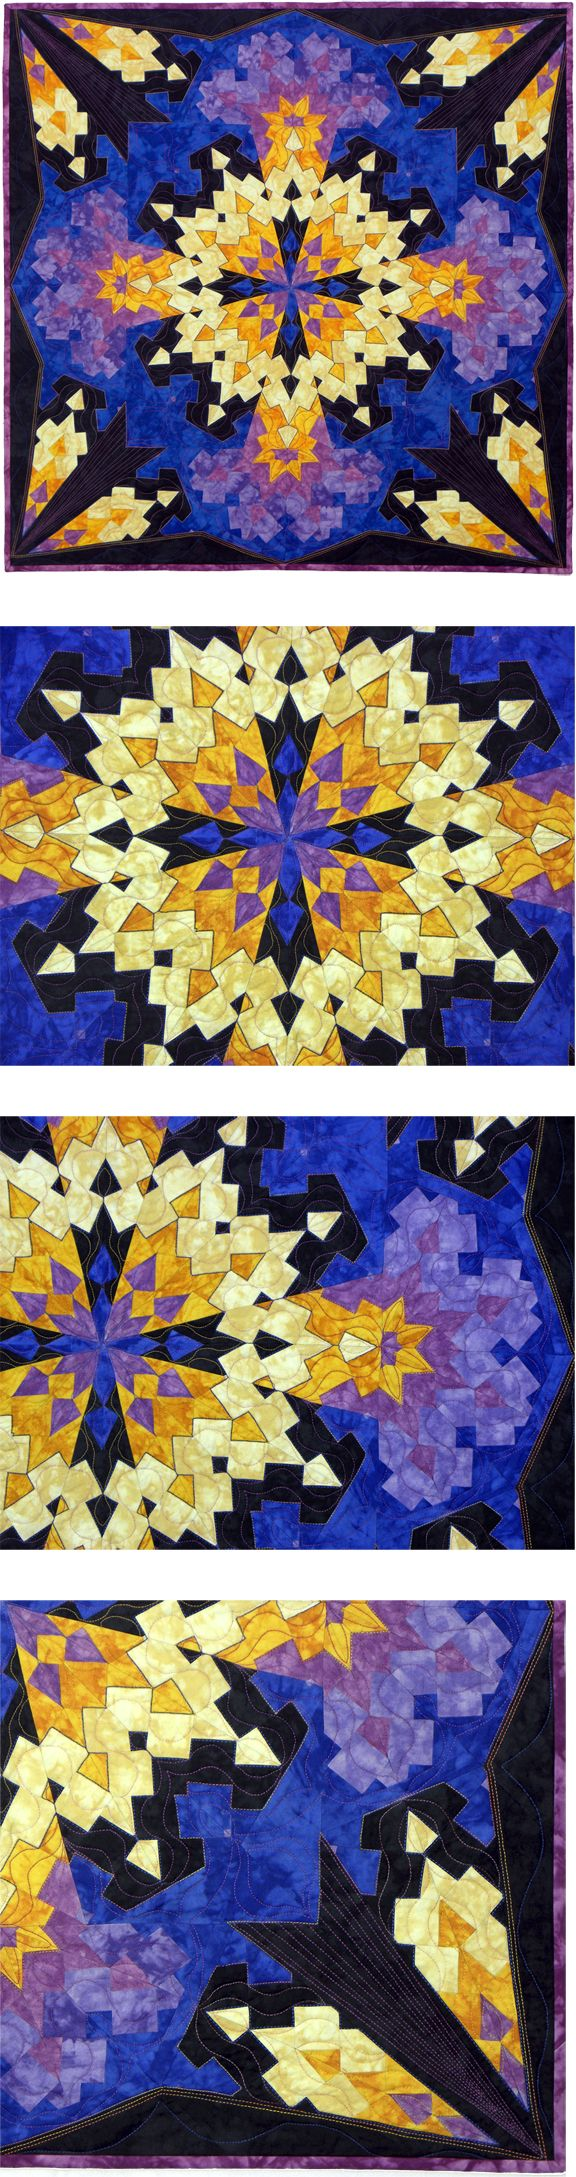 Quilt, Strip Pieced, Kaleidoscope, Rita Hutchens, Video: www.youtube.com/watch?v=Gl0yo9-1omc&list=UUtEuyNc9YD-XVdjgWet7H5A